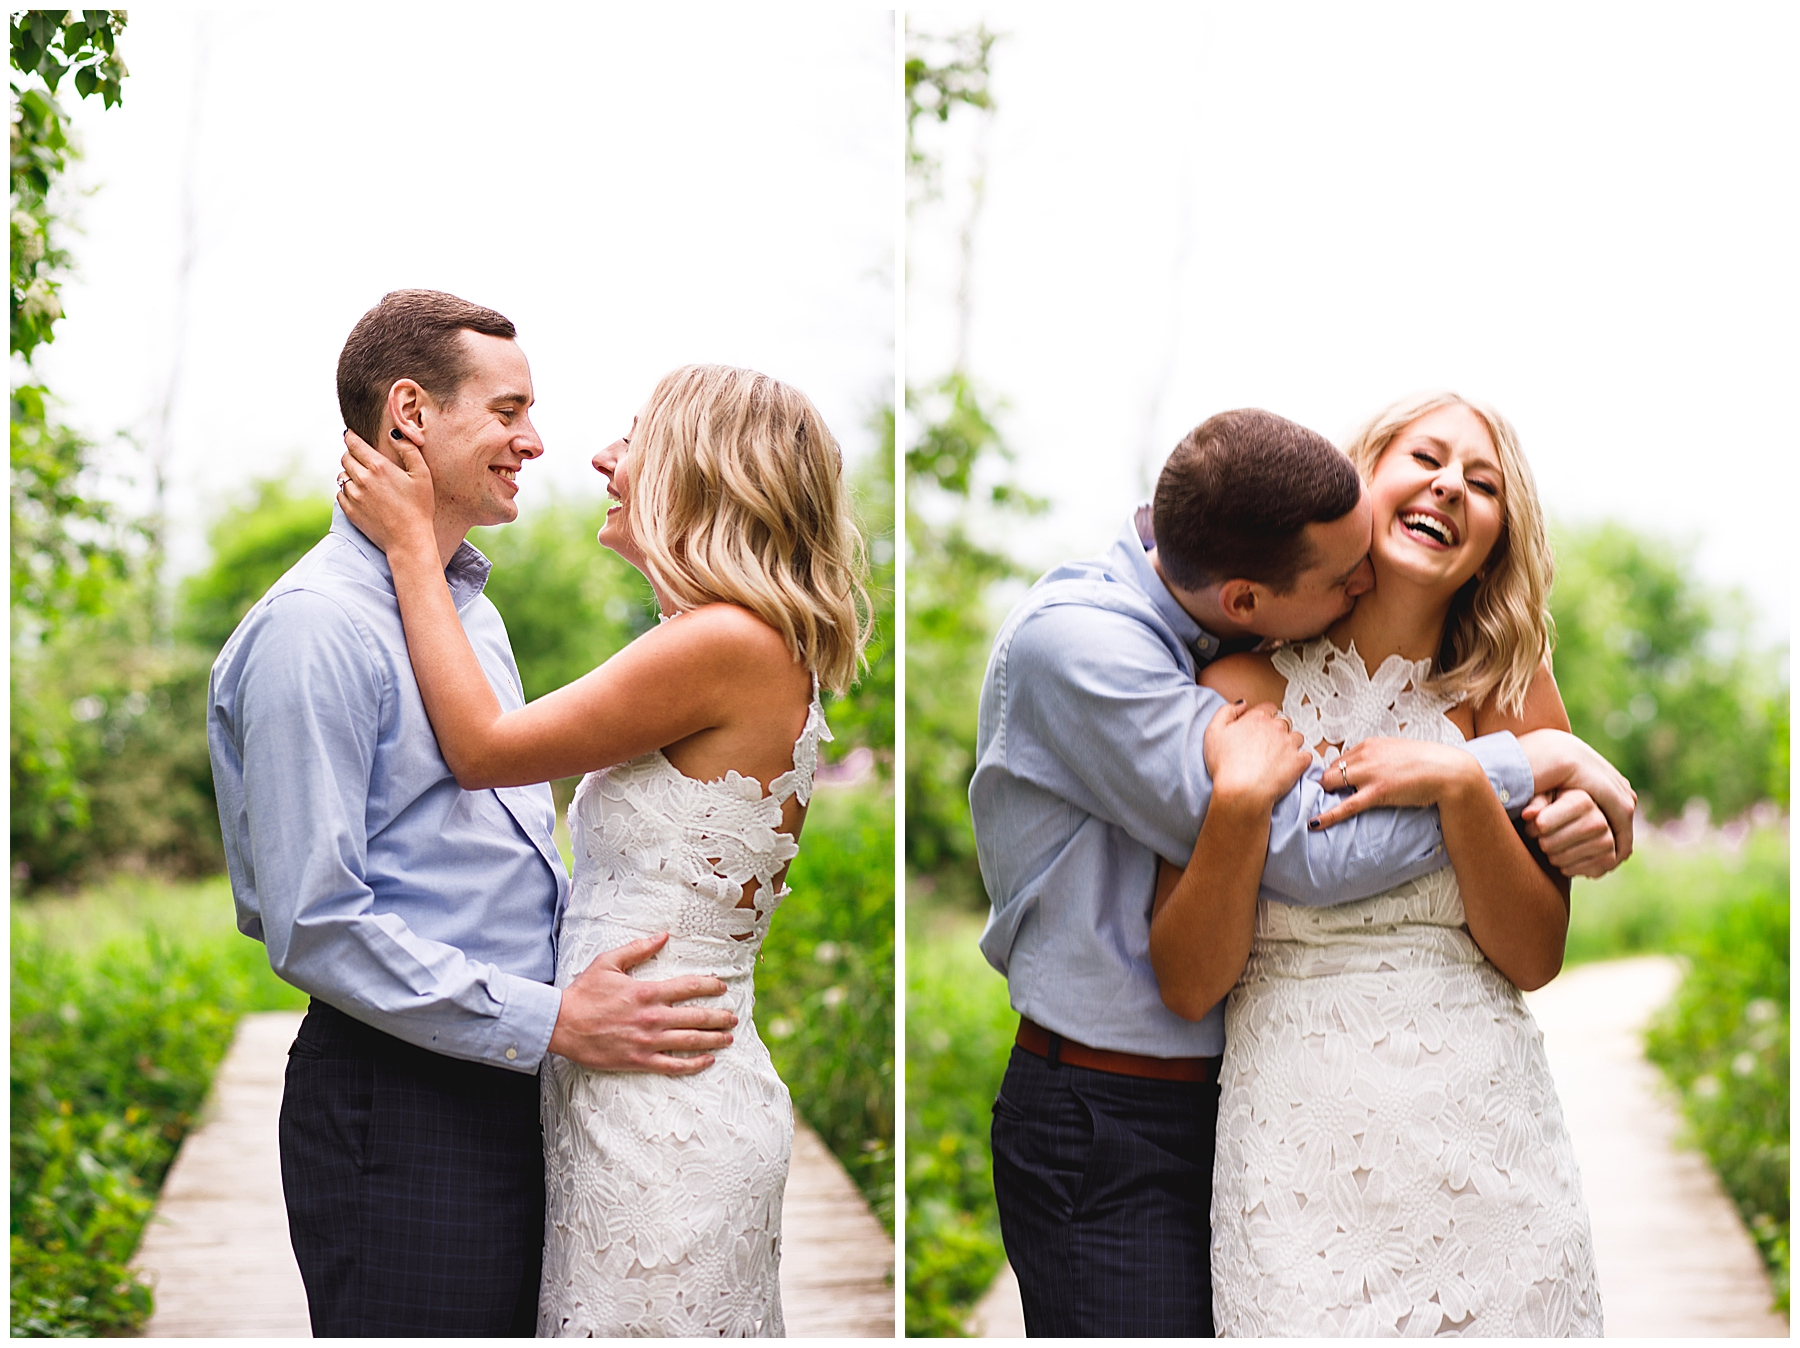 White dress engagement session in the park - Chelsea Matson Photography